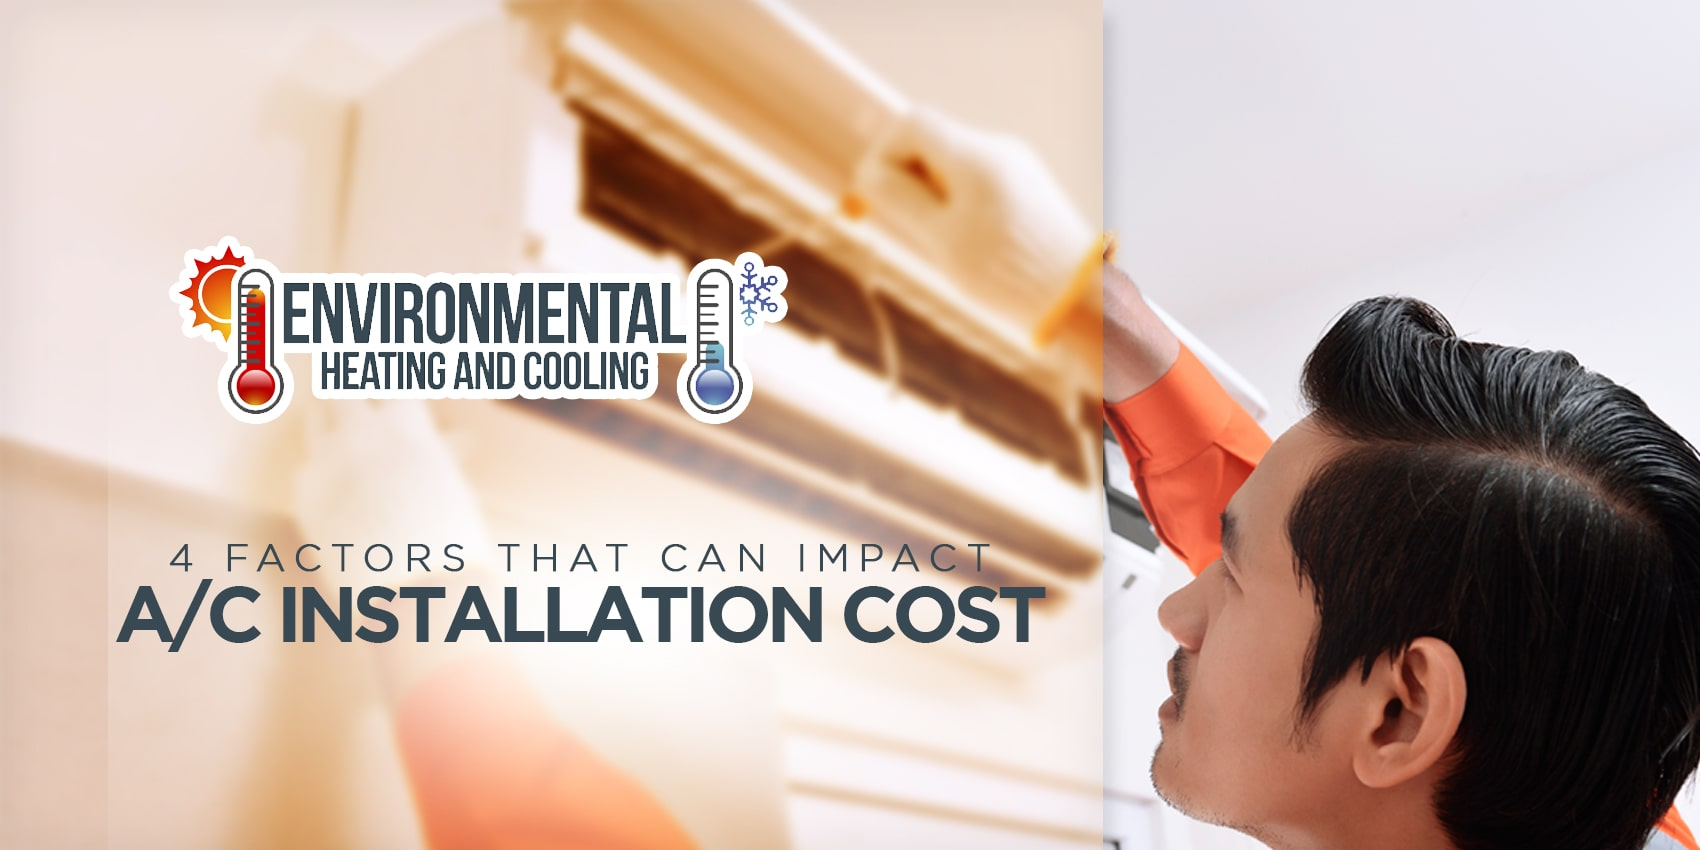 4 Factors That Can Impact A/C Installation Cost